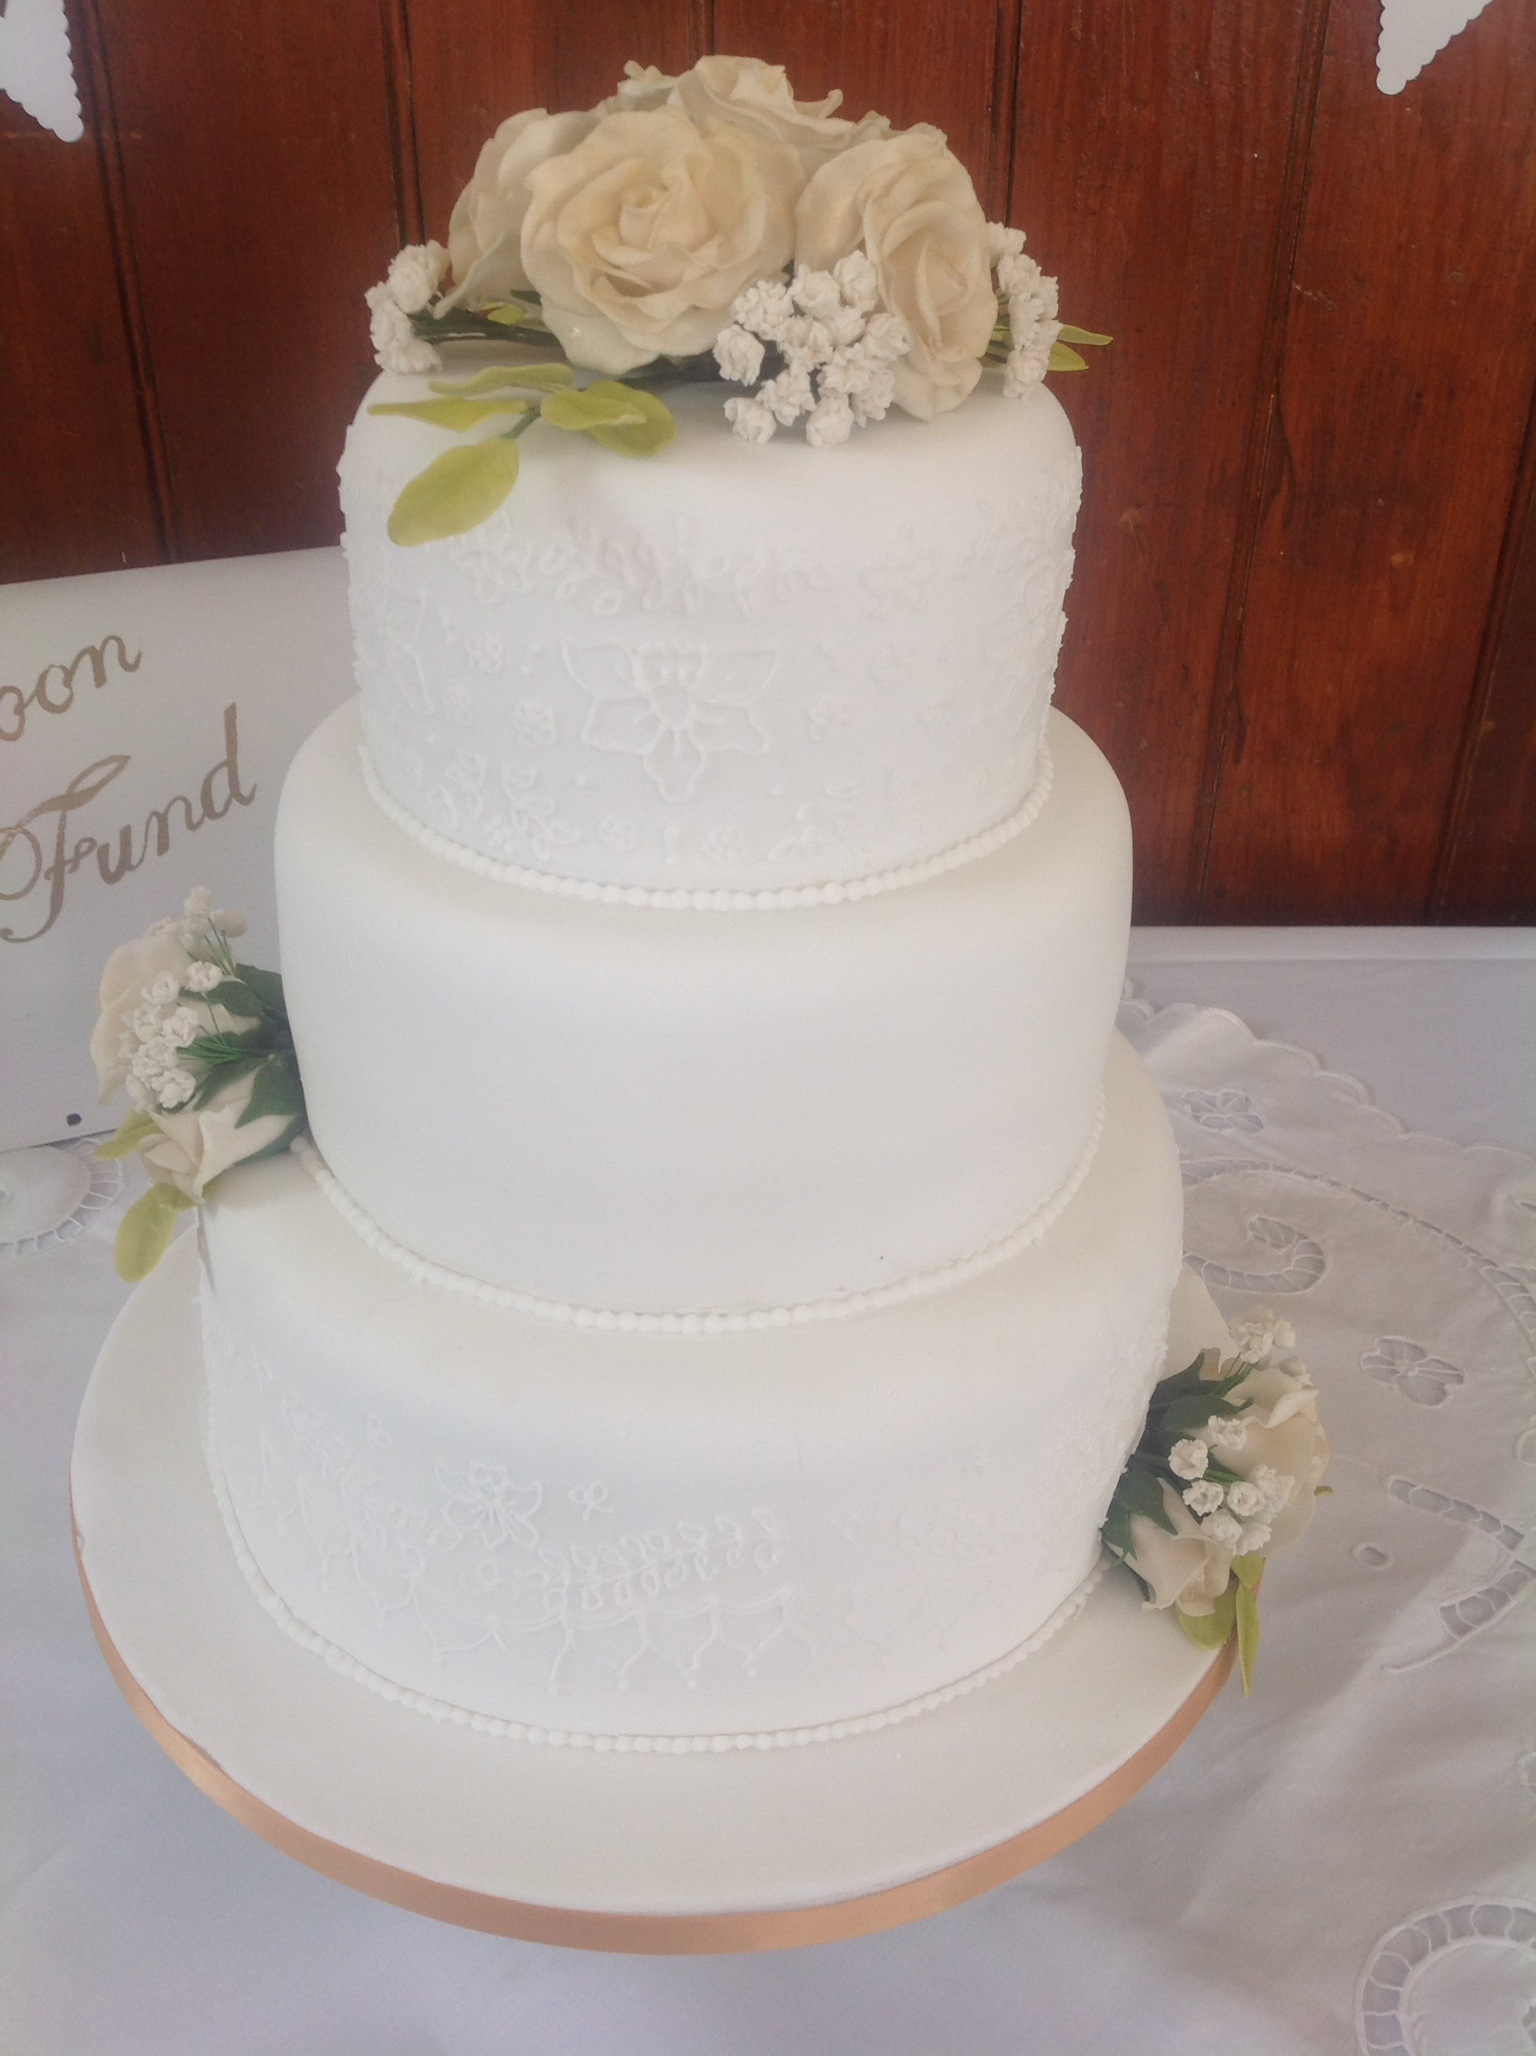 a 3 tired stacked cake in white with lace detail piped on bottom and top tier with a posy of roses, gip and leaves